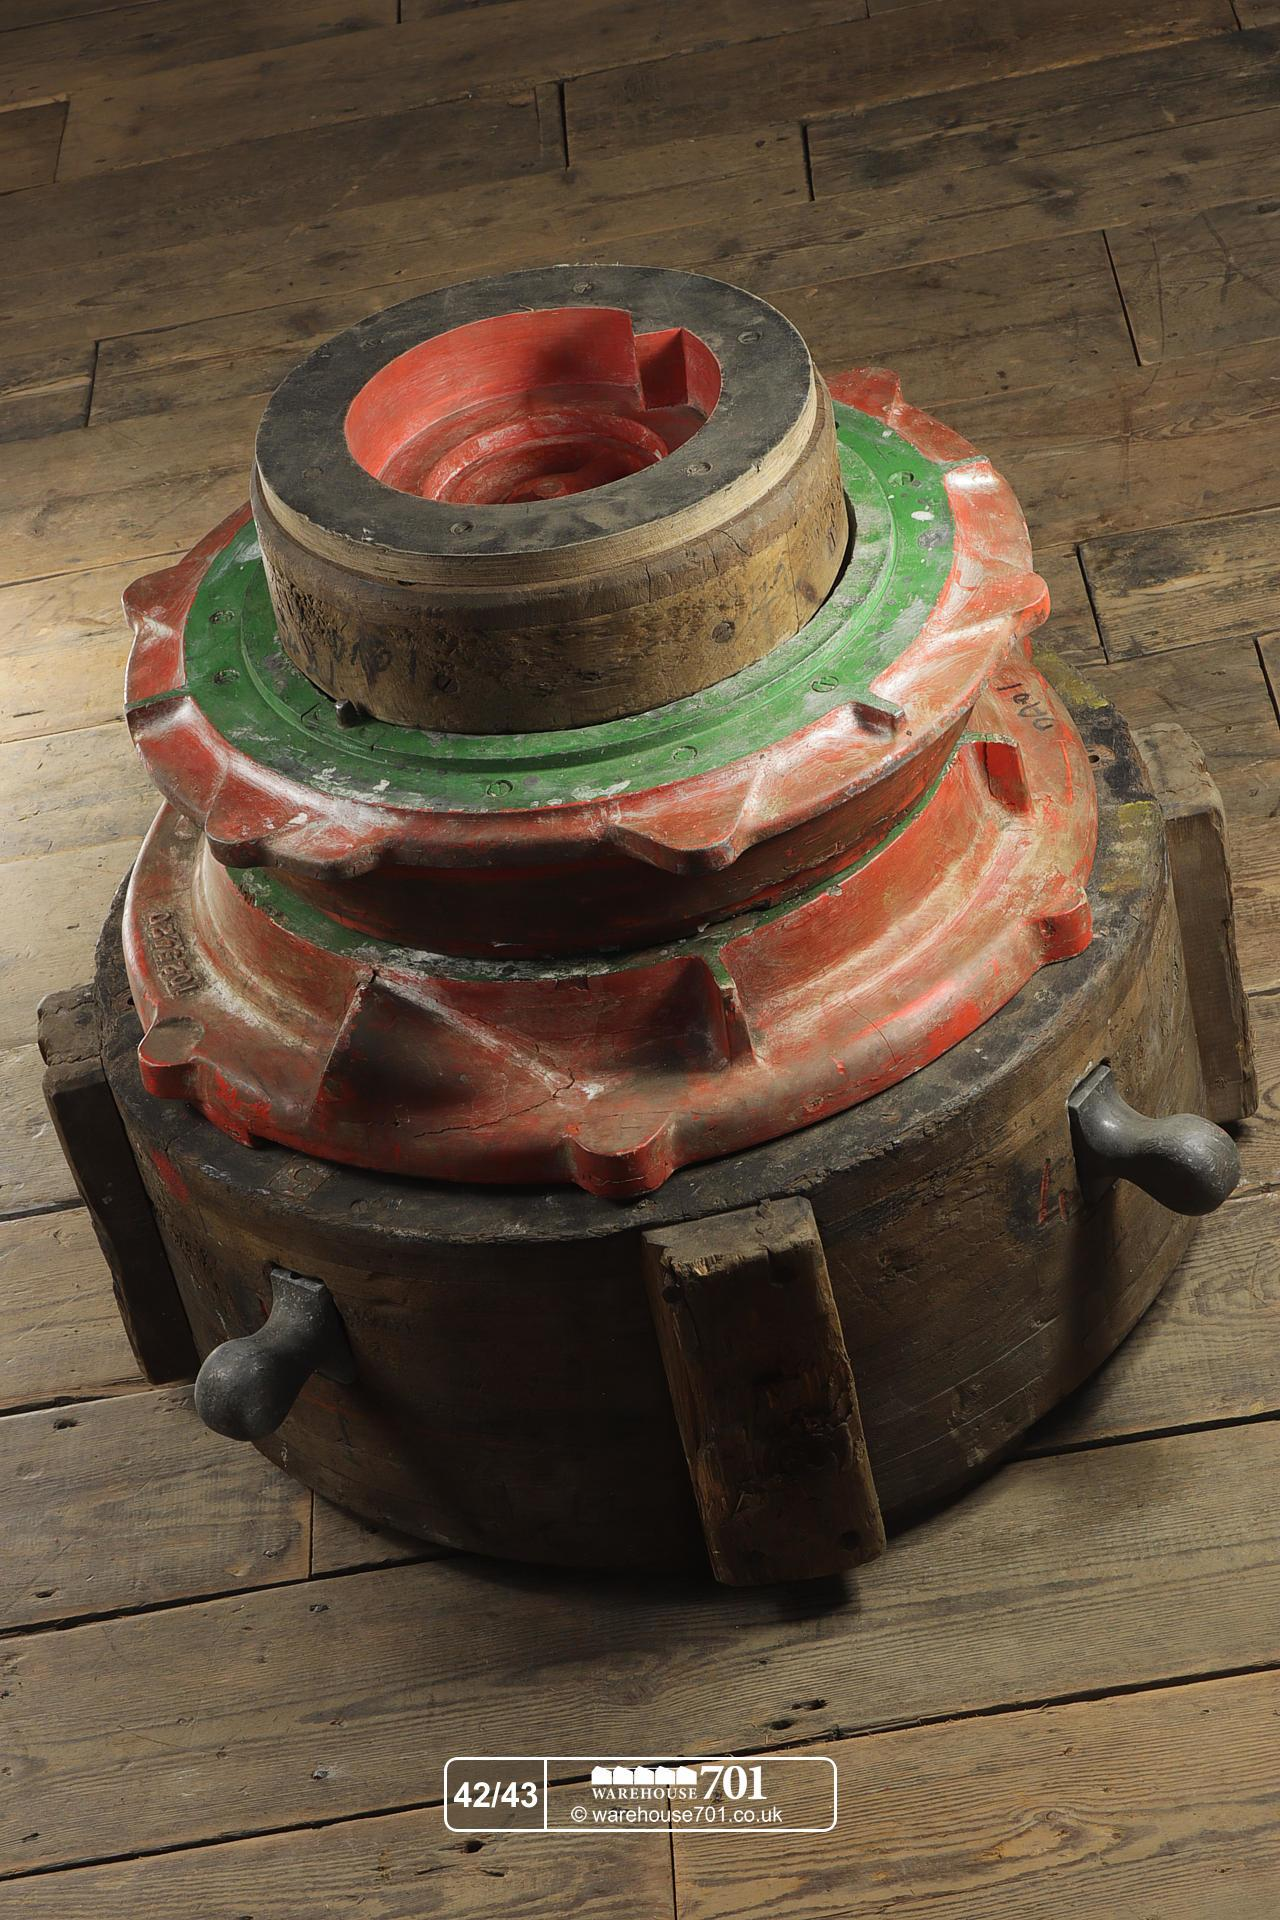 Reclaimed Foundry Industrial Patterns or Moulds (No's 42, 43) for Shop, Retail and Home Display